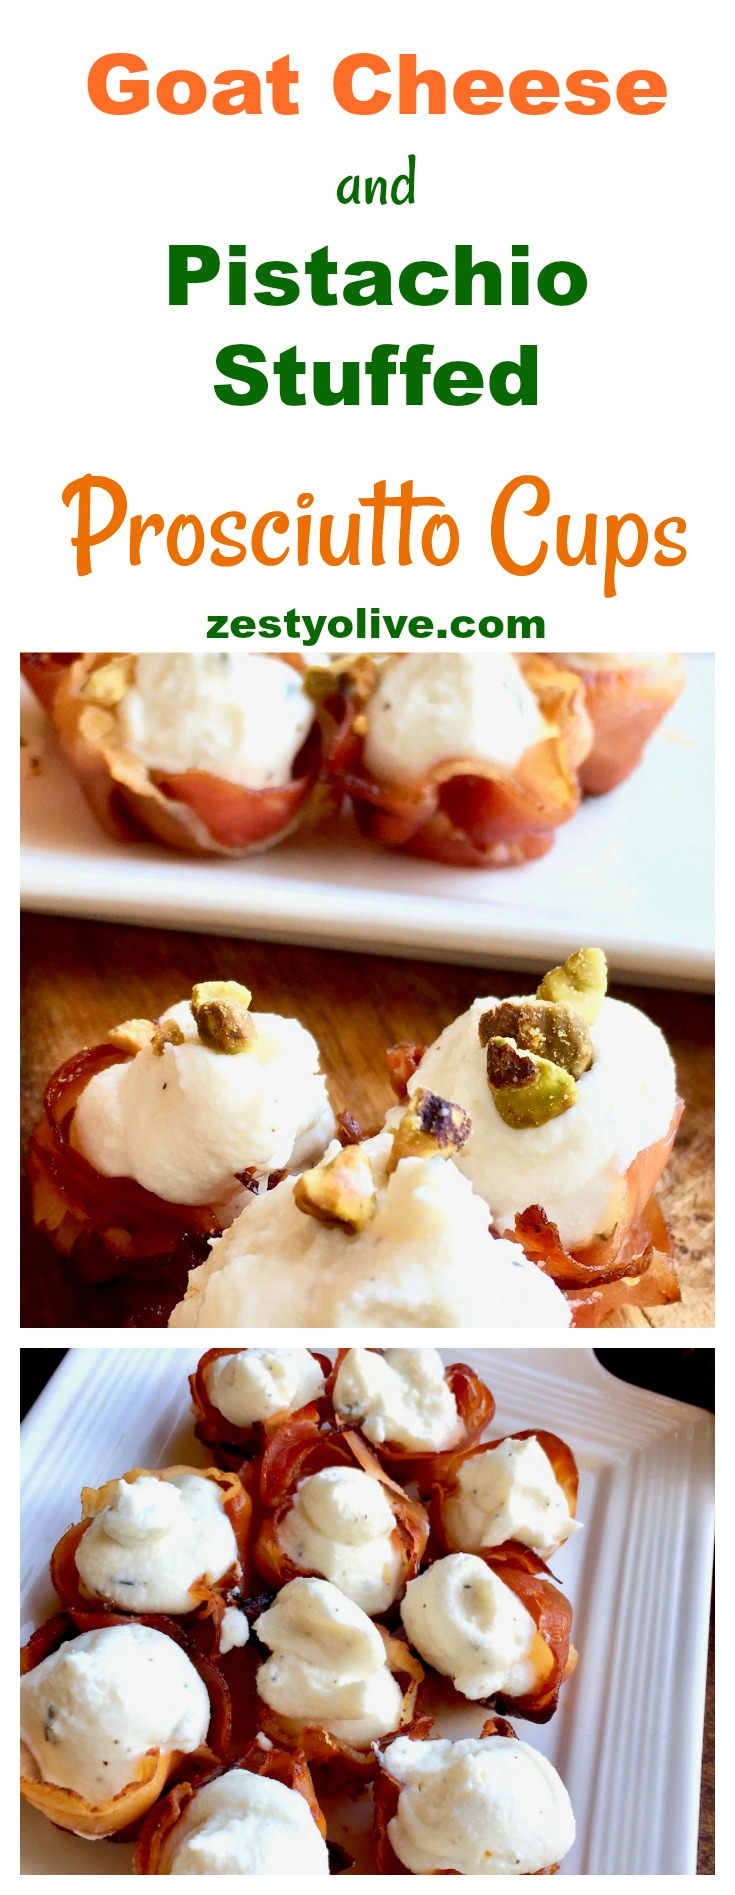 Impress your guests with this elegant, yet easy appetizer of whipped goat cheese stuffed prosciutto cups topped with crushed pistachios.